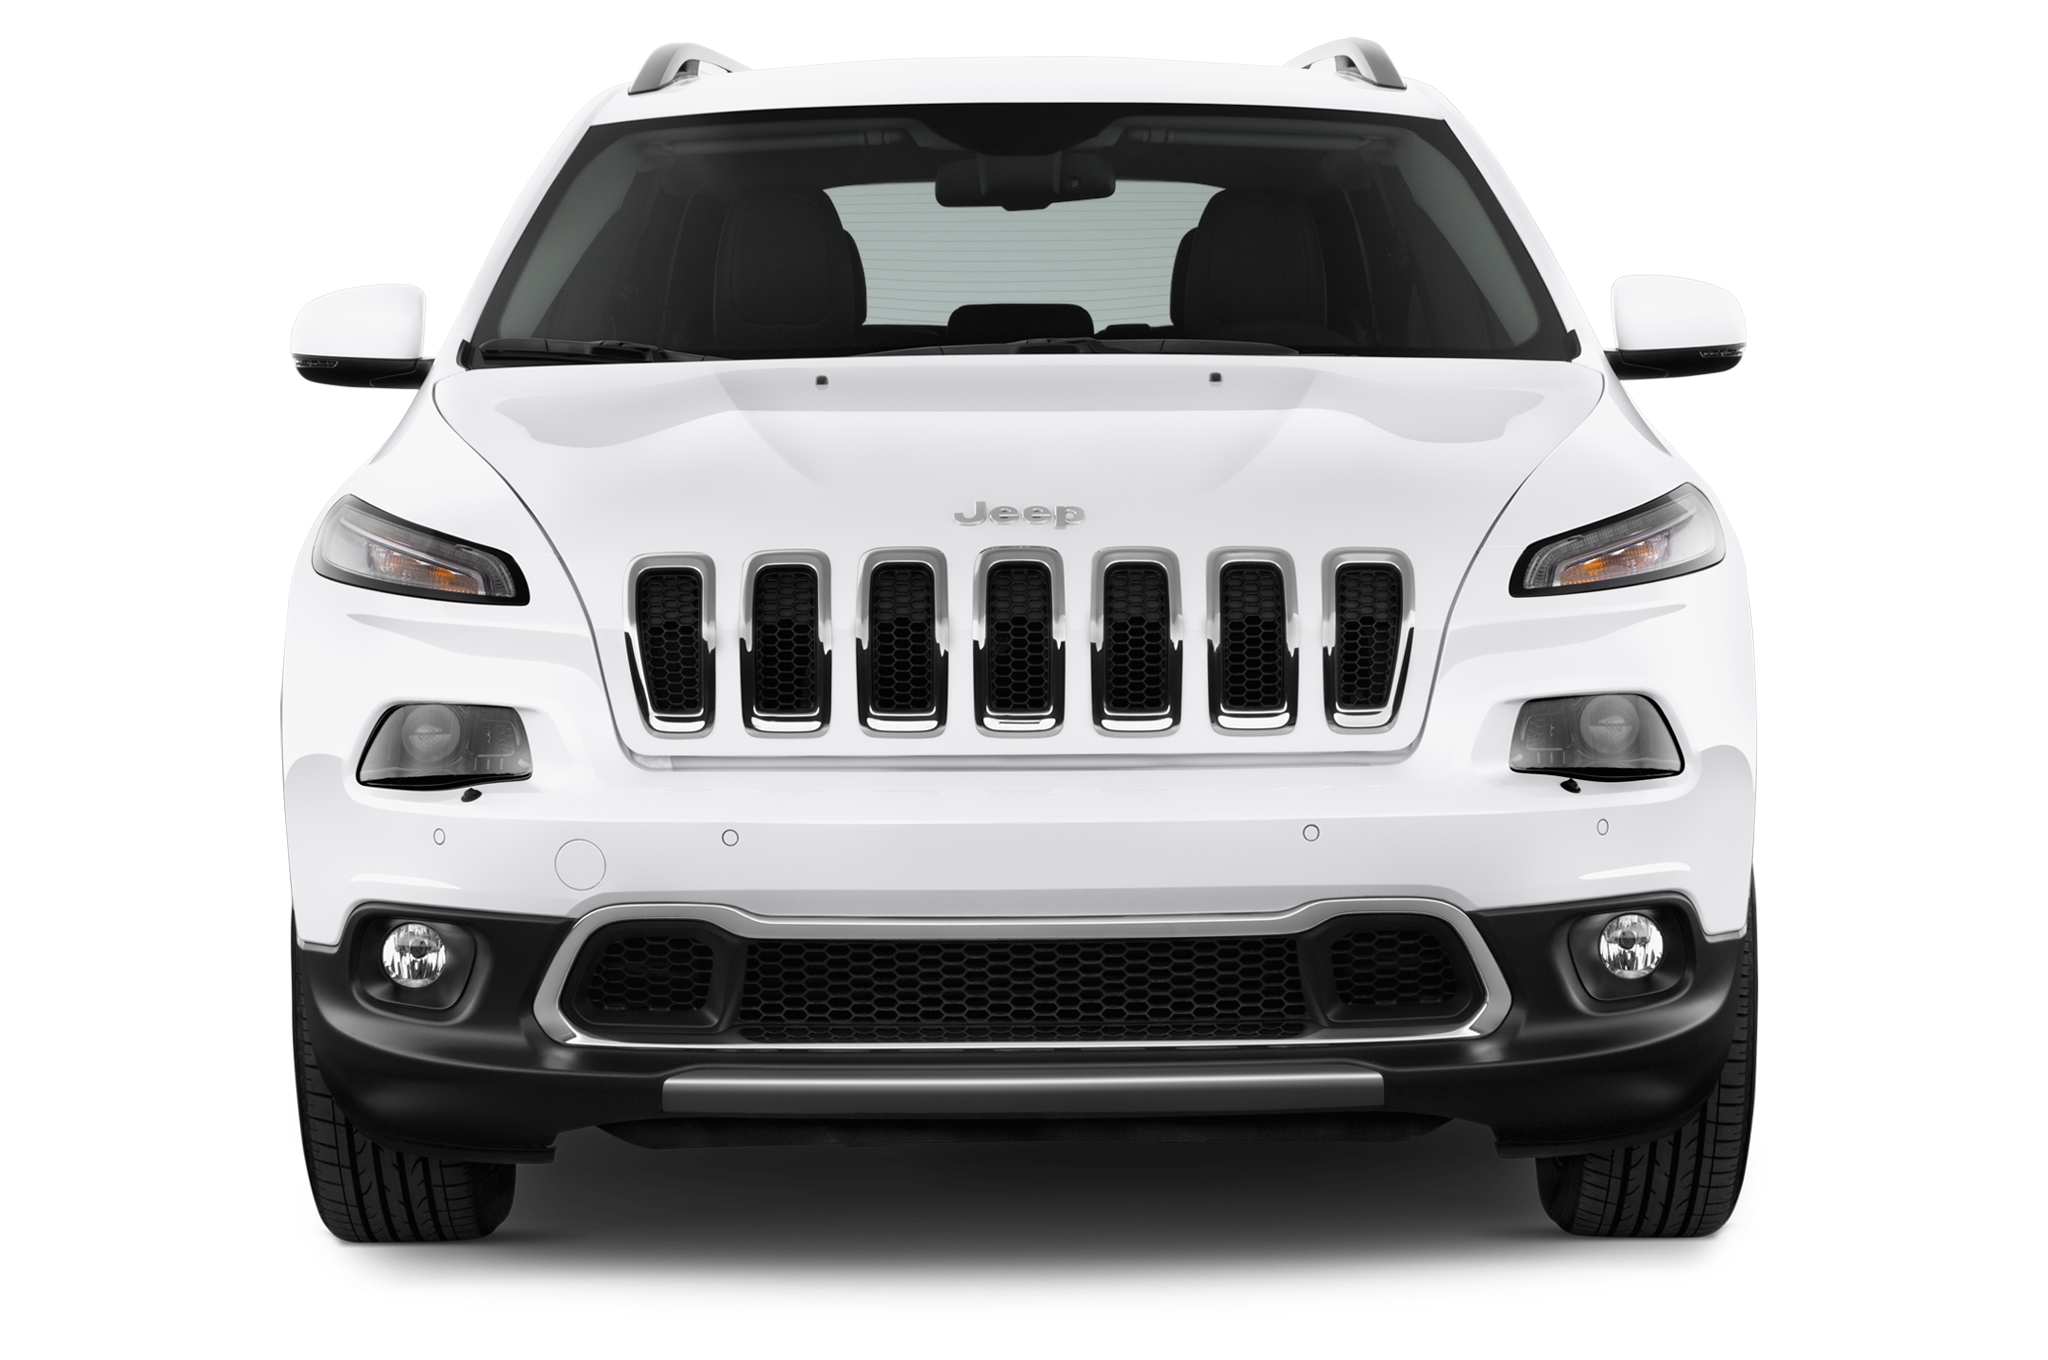 Free download of Jeep In PNG